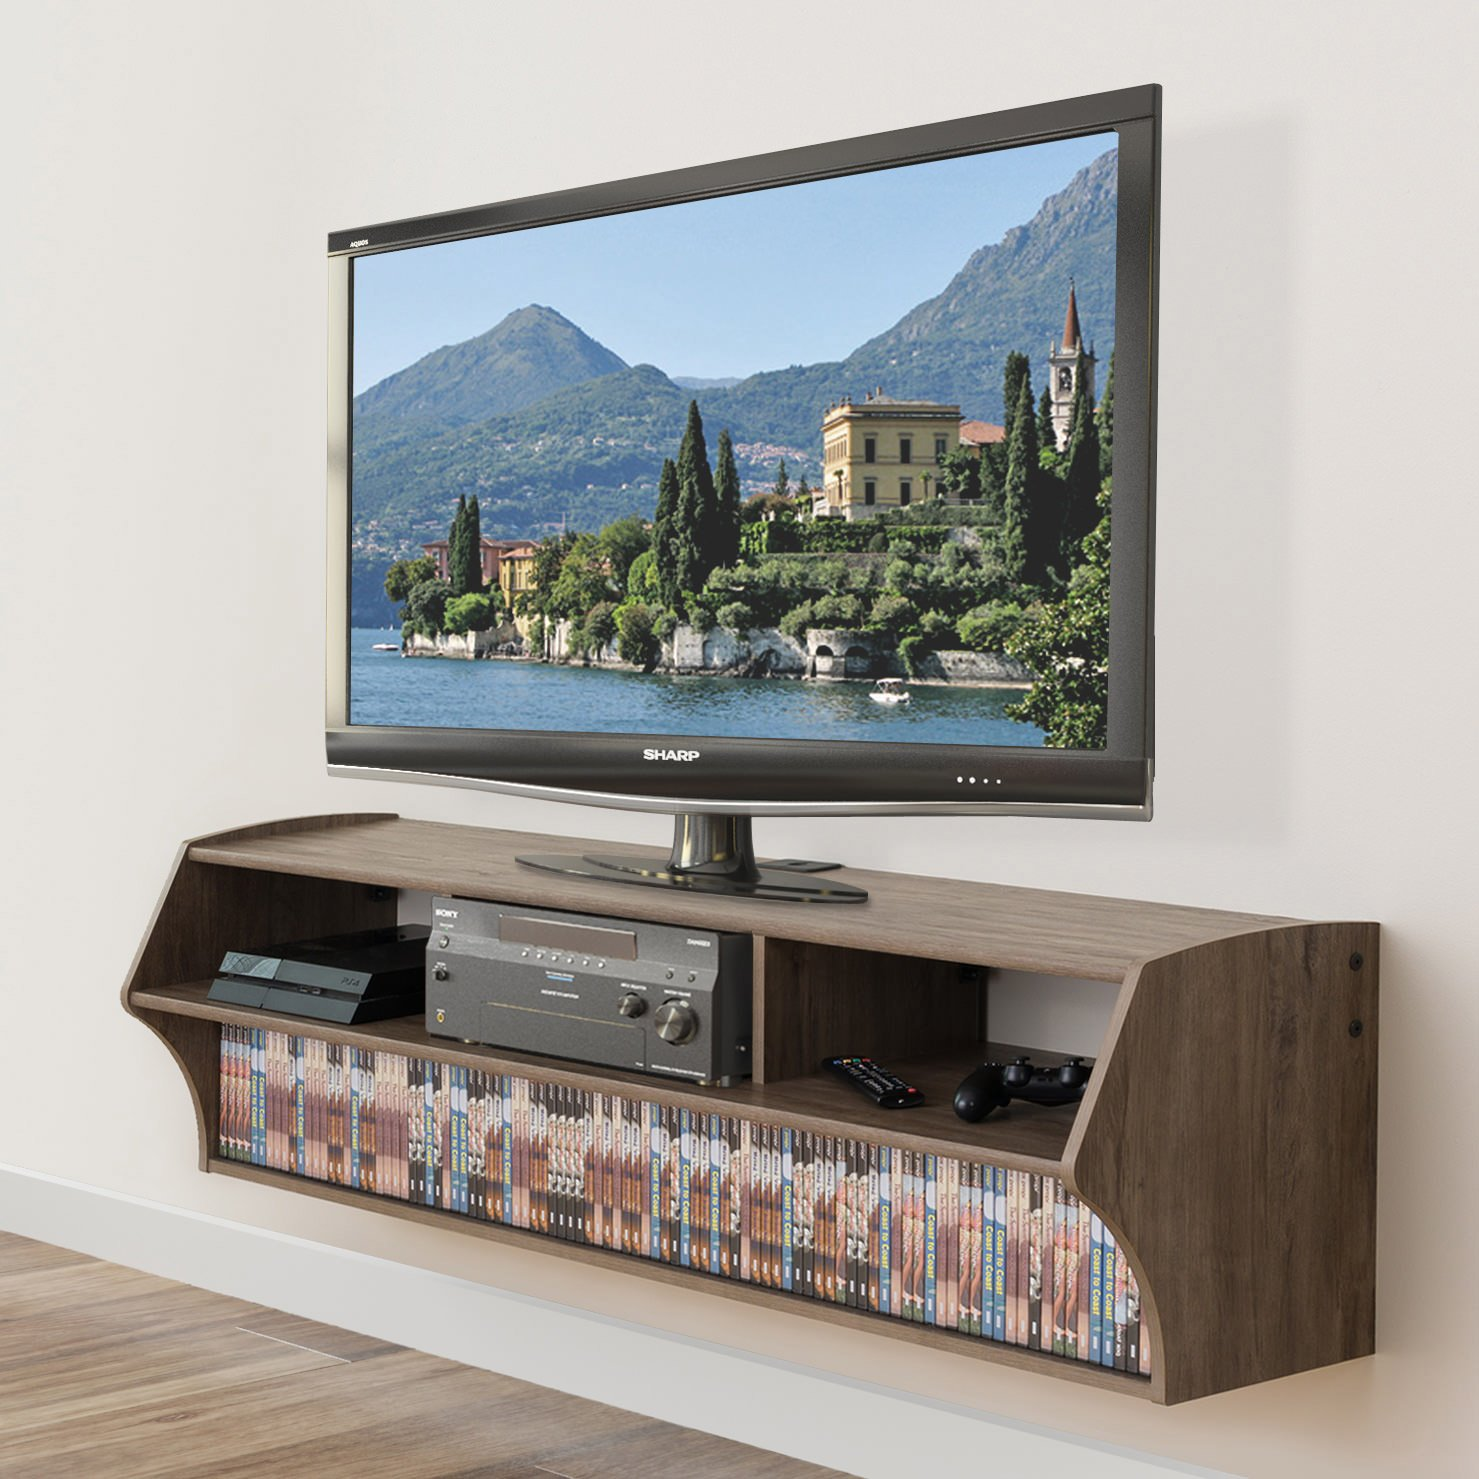 Floating Tv Stand Altus Plus 58 Inch Floating Tv Stand By Prepac